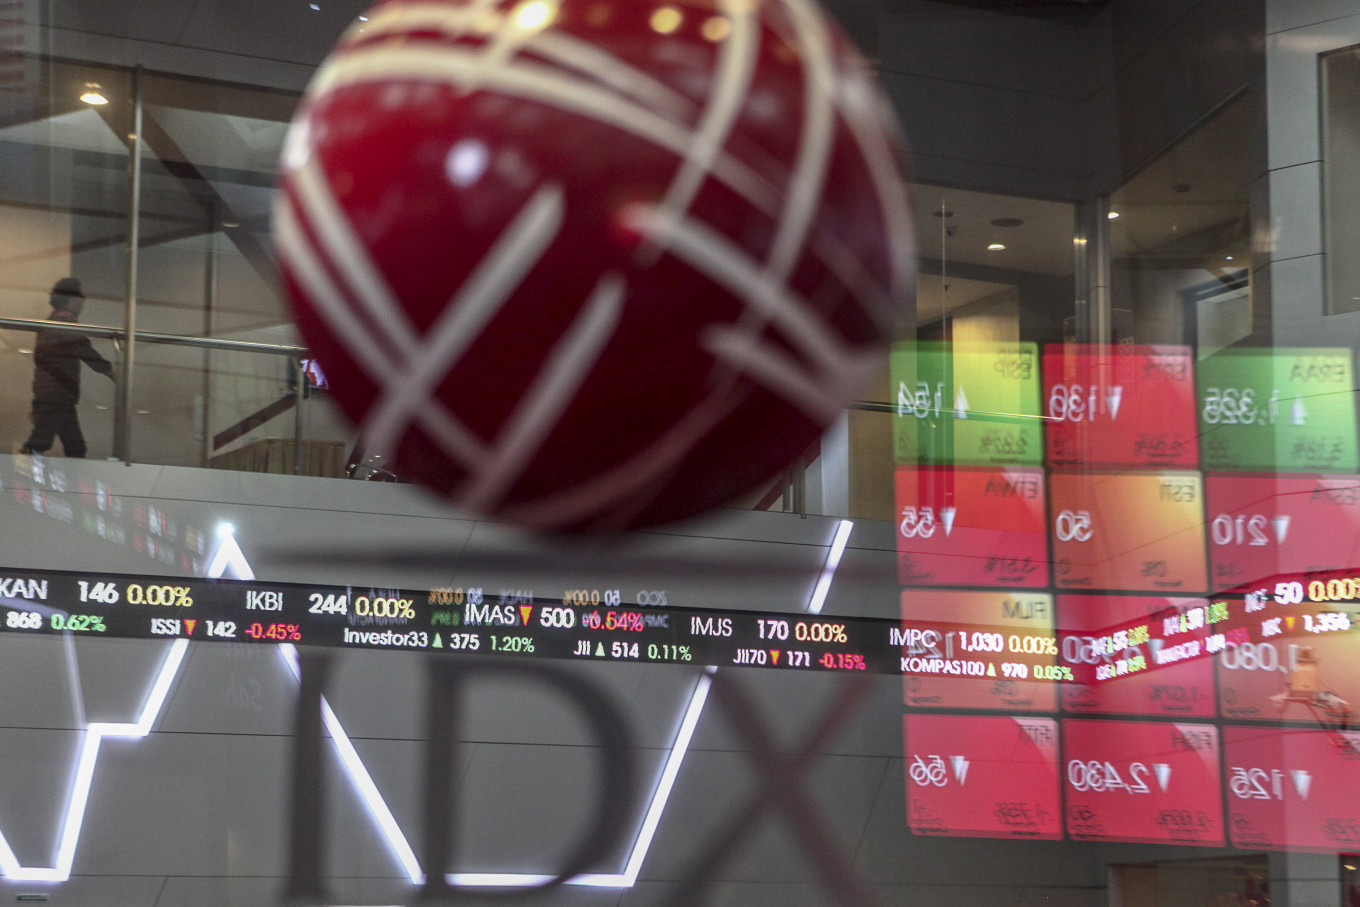 Indonesian stocks succumb to the red despite global market jumps